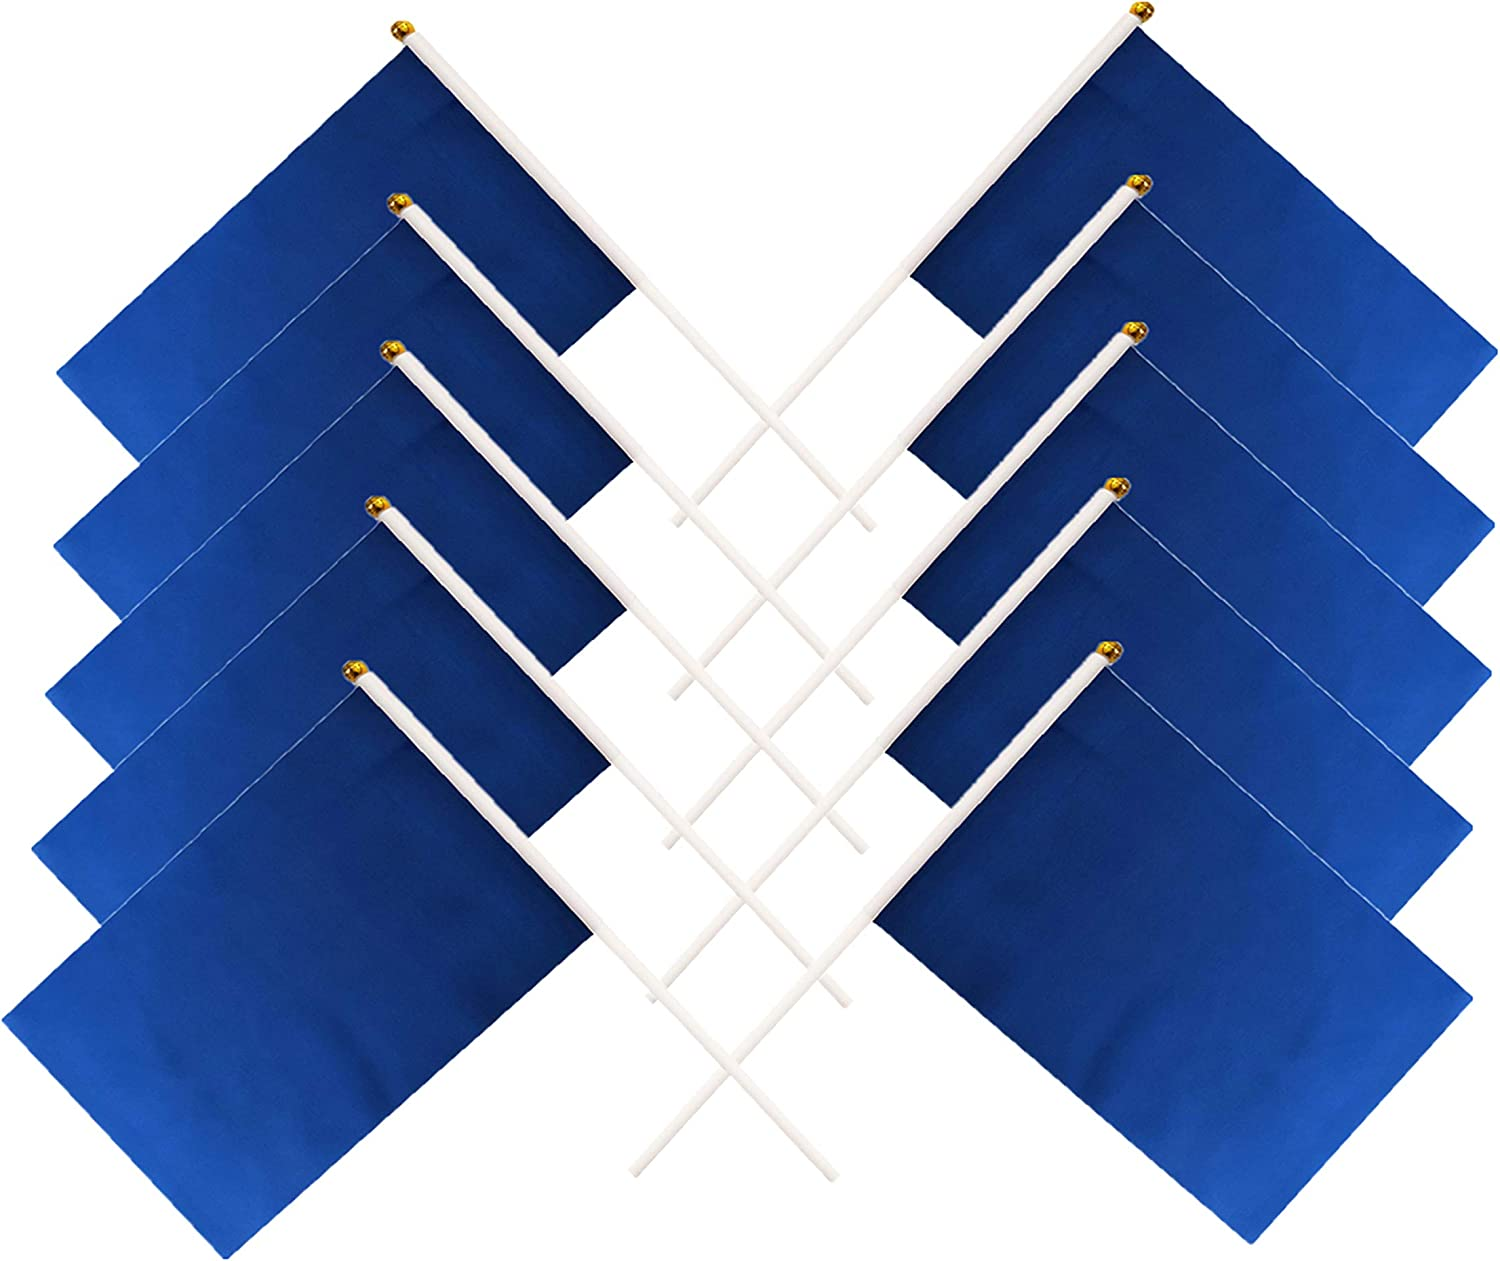 tibijoy 60 Pack Navy Blue Small Mini Flags On Sticks,Hand Held Solid Navy Blue DIY Graffiti Flag,Party Events Celebration,School,Grand Opening,Kids Birthday,Sports Clubs,Flower Pot